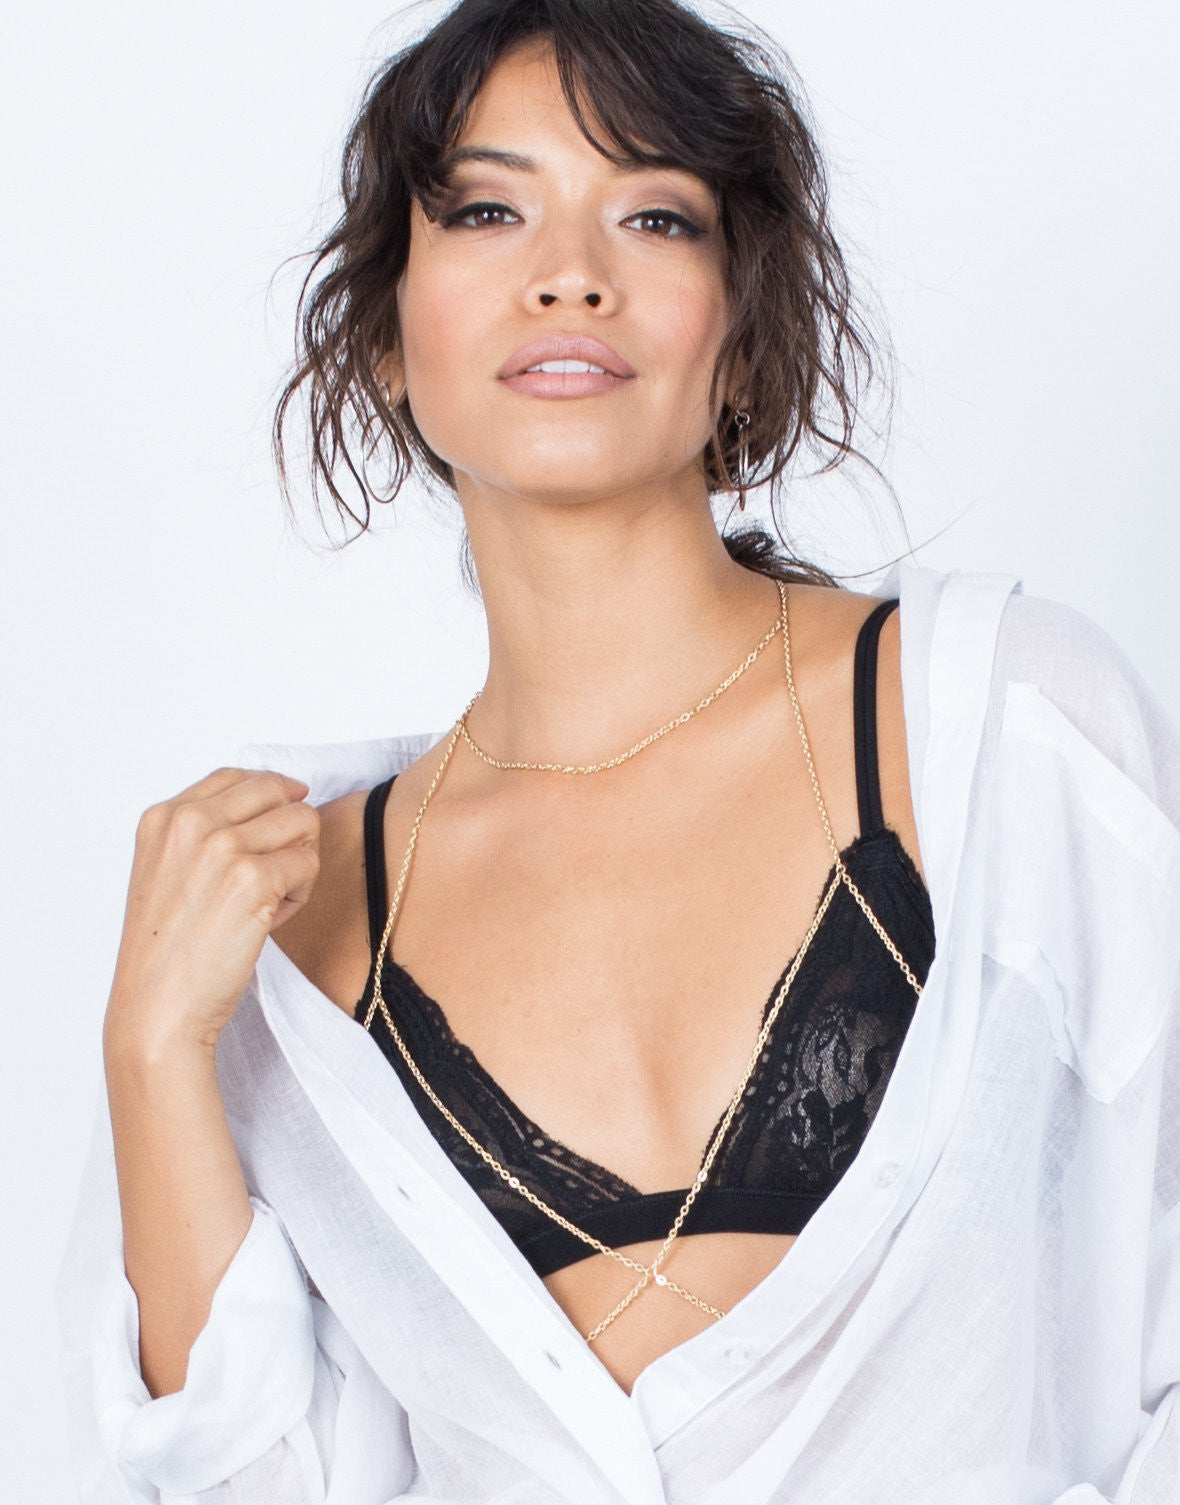 Gold Crossed Bralette Body Chain - Front View